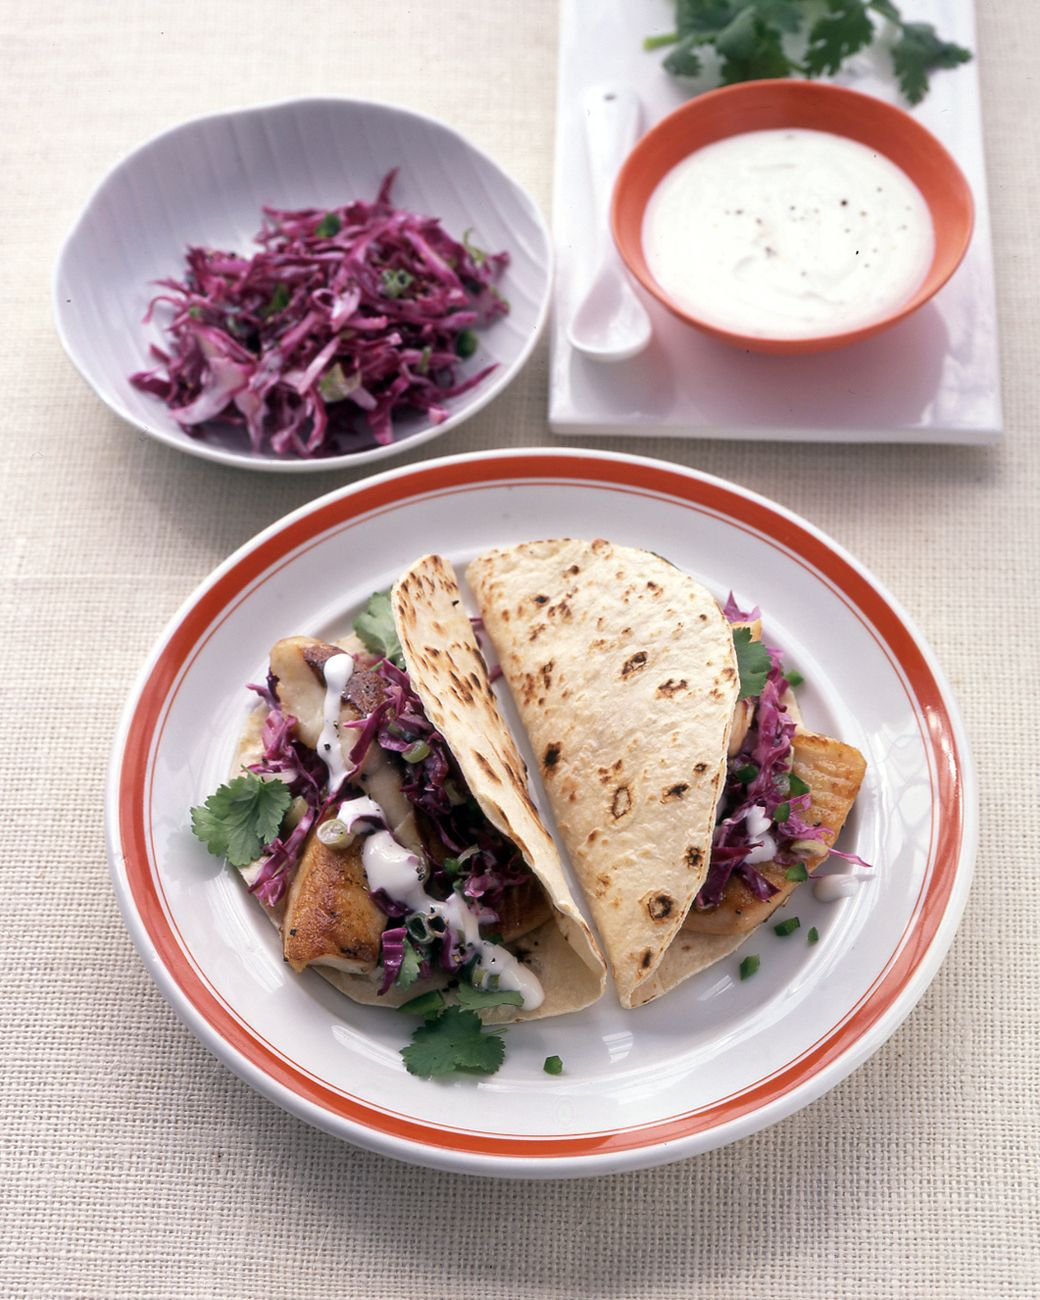 With simple ingredients, fish tacos are a light and easy meal. The creamy red-cabbage slaw can also be served on sandwiches or as a side for any Mexican dish.